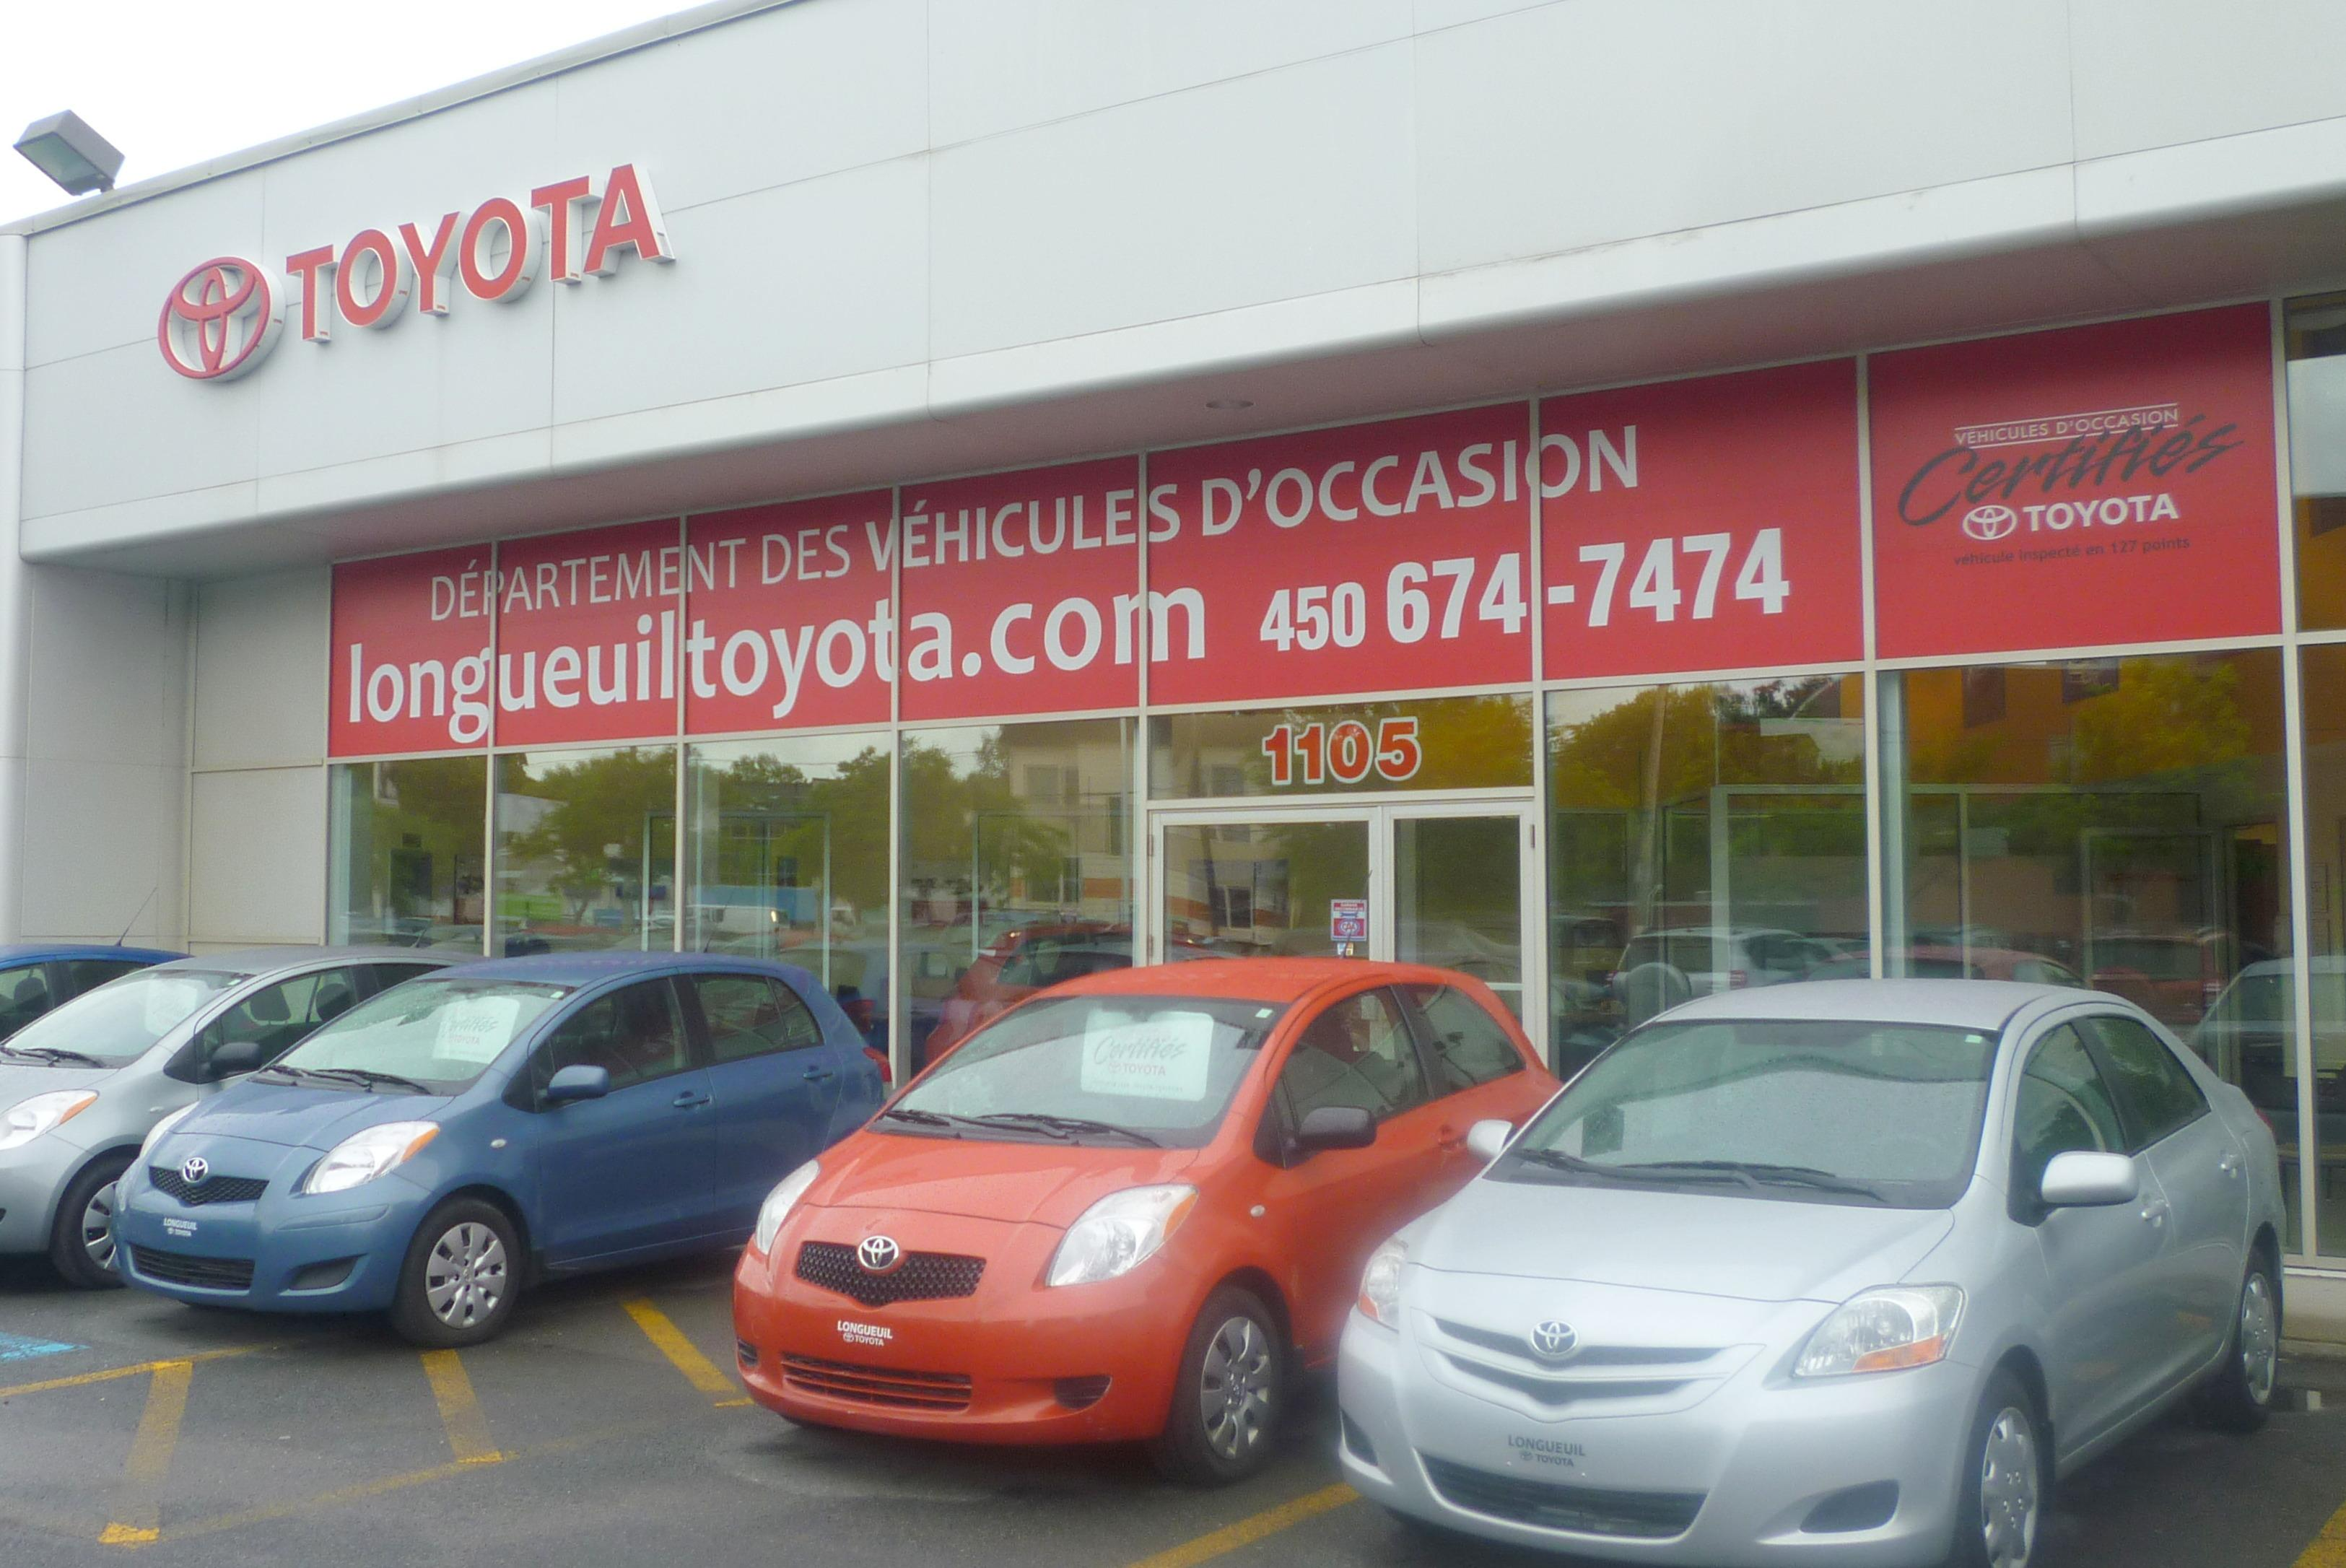 historique longueuil toyota longueuil. Black Bedroom Furniture Sets. Home Design Ideas